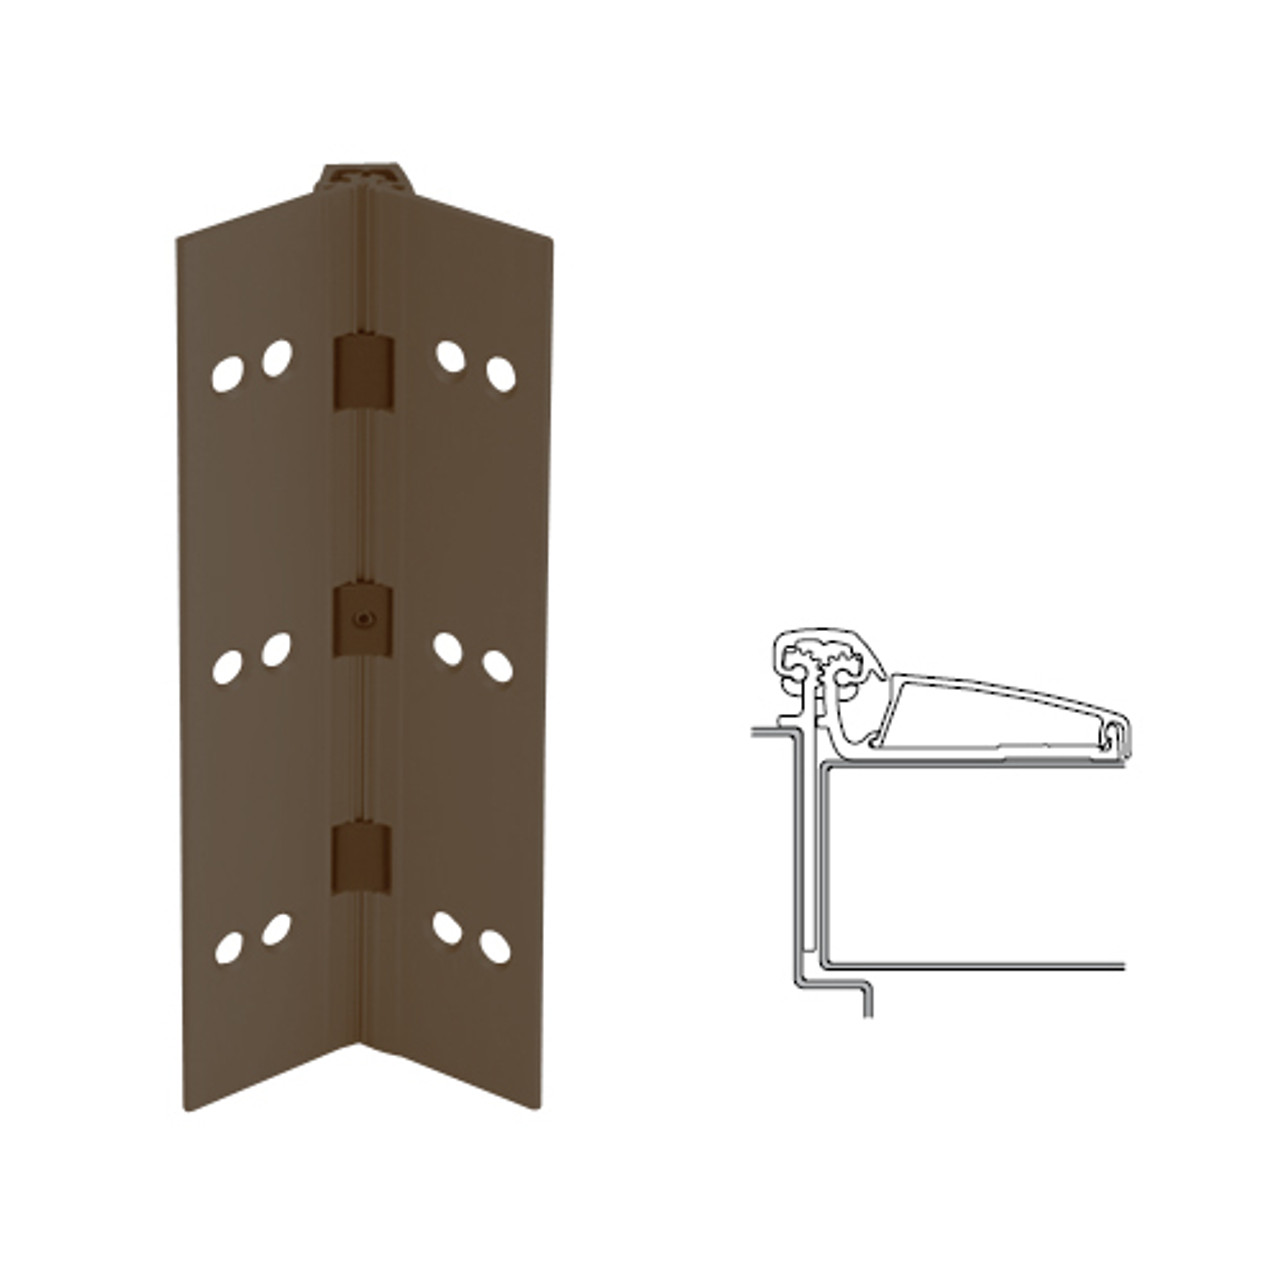 046XY-313AN-95-TEKWD IVES Adjustable Half Surface Continuous Geared Hinges with Wood Screws in Dark Bronze Anodized